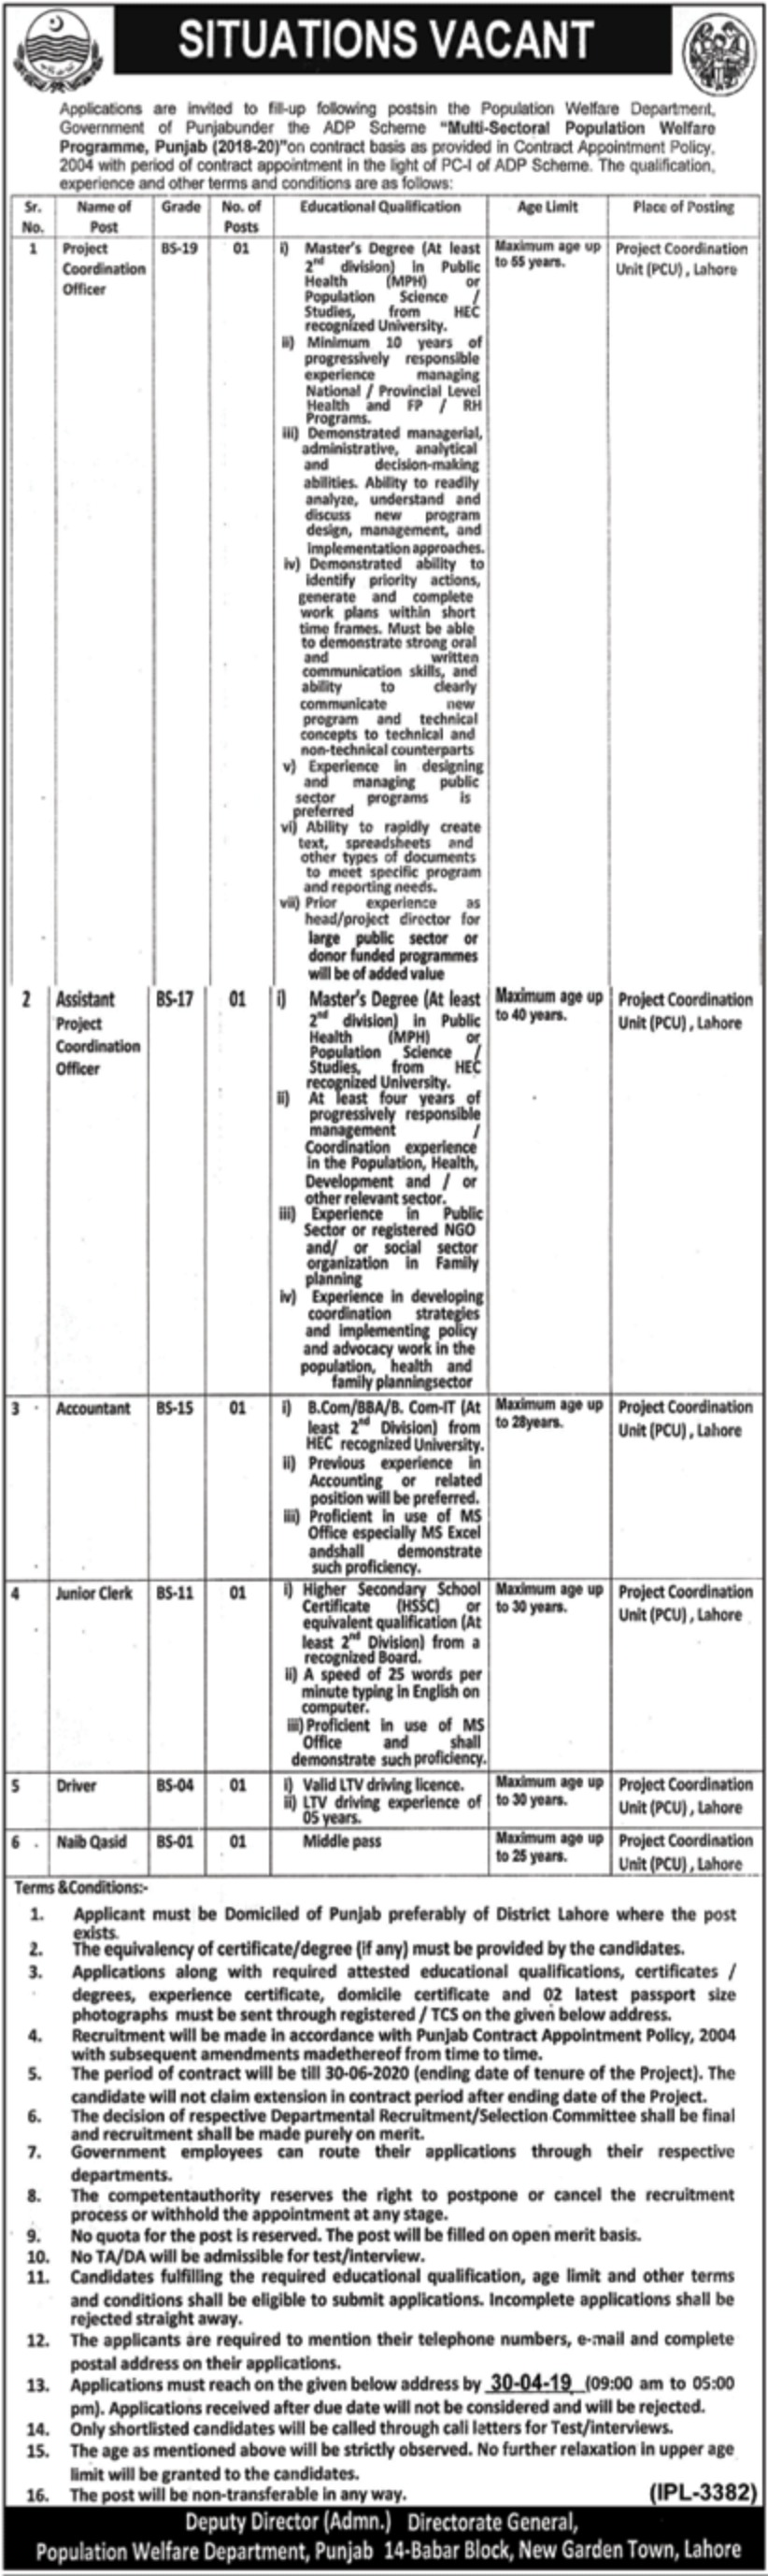 Population Welfare Department Jobs 2019 Government of Punjab Latest